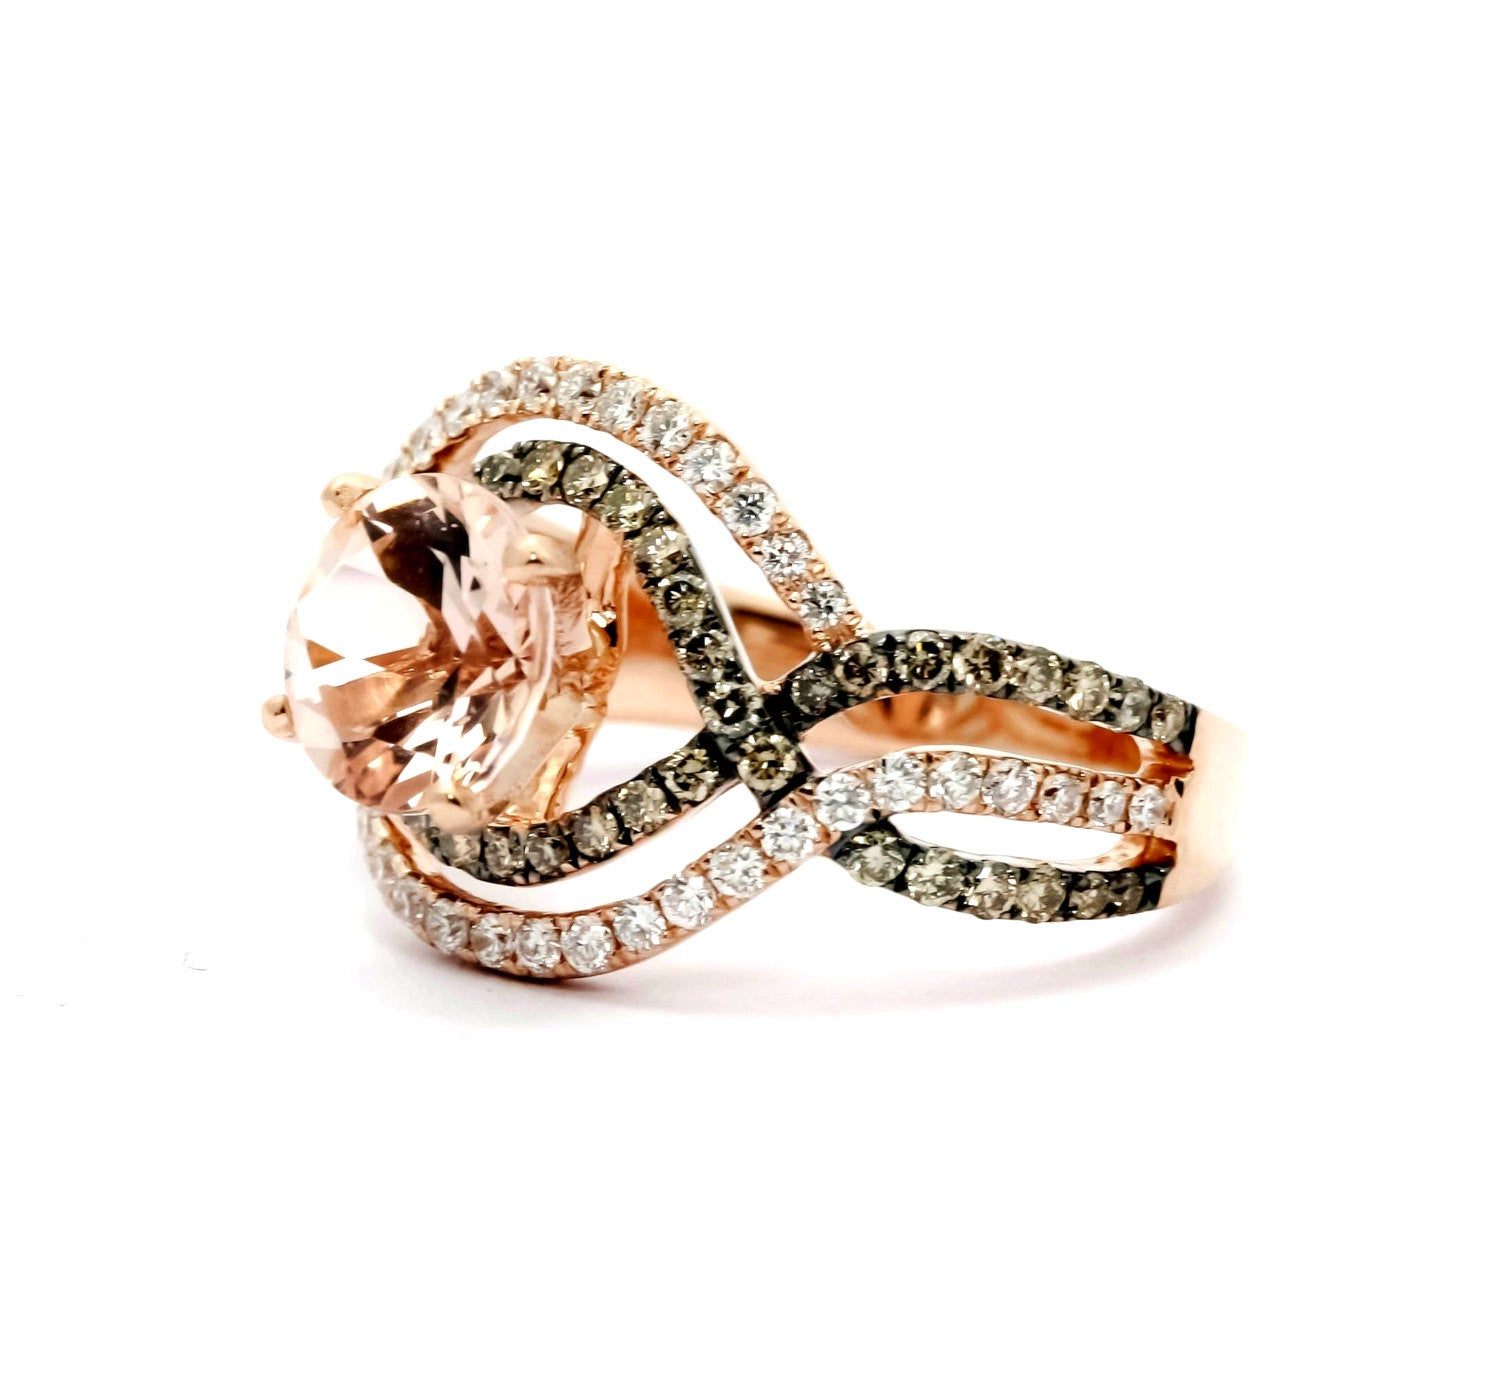 Unique Morganite Halo Infinity Rose Gold, White & Brown Diamonds Engagement Ring, Anniversary Ring With 1 Carat Morganite - MG94616